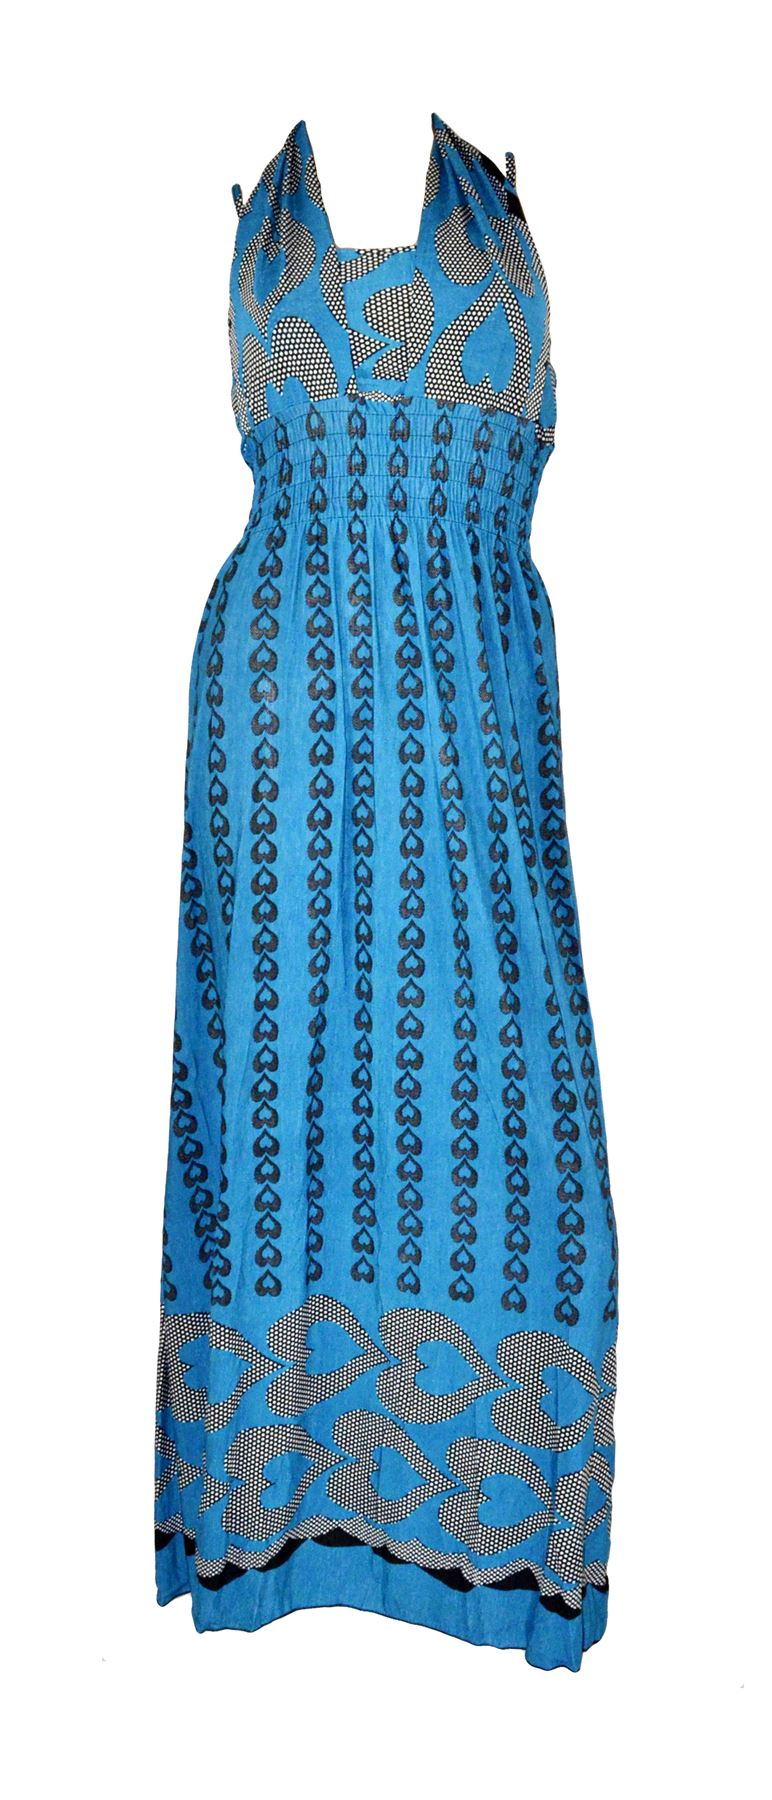 Belle Donne Women's Heart Pattern Summer Dress-Teal/M